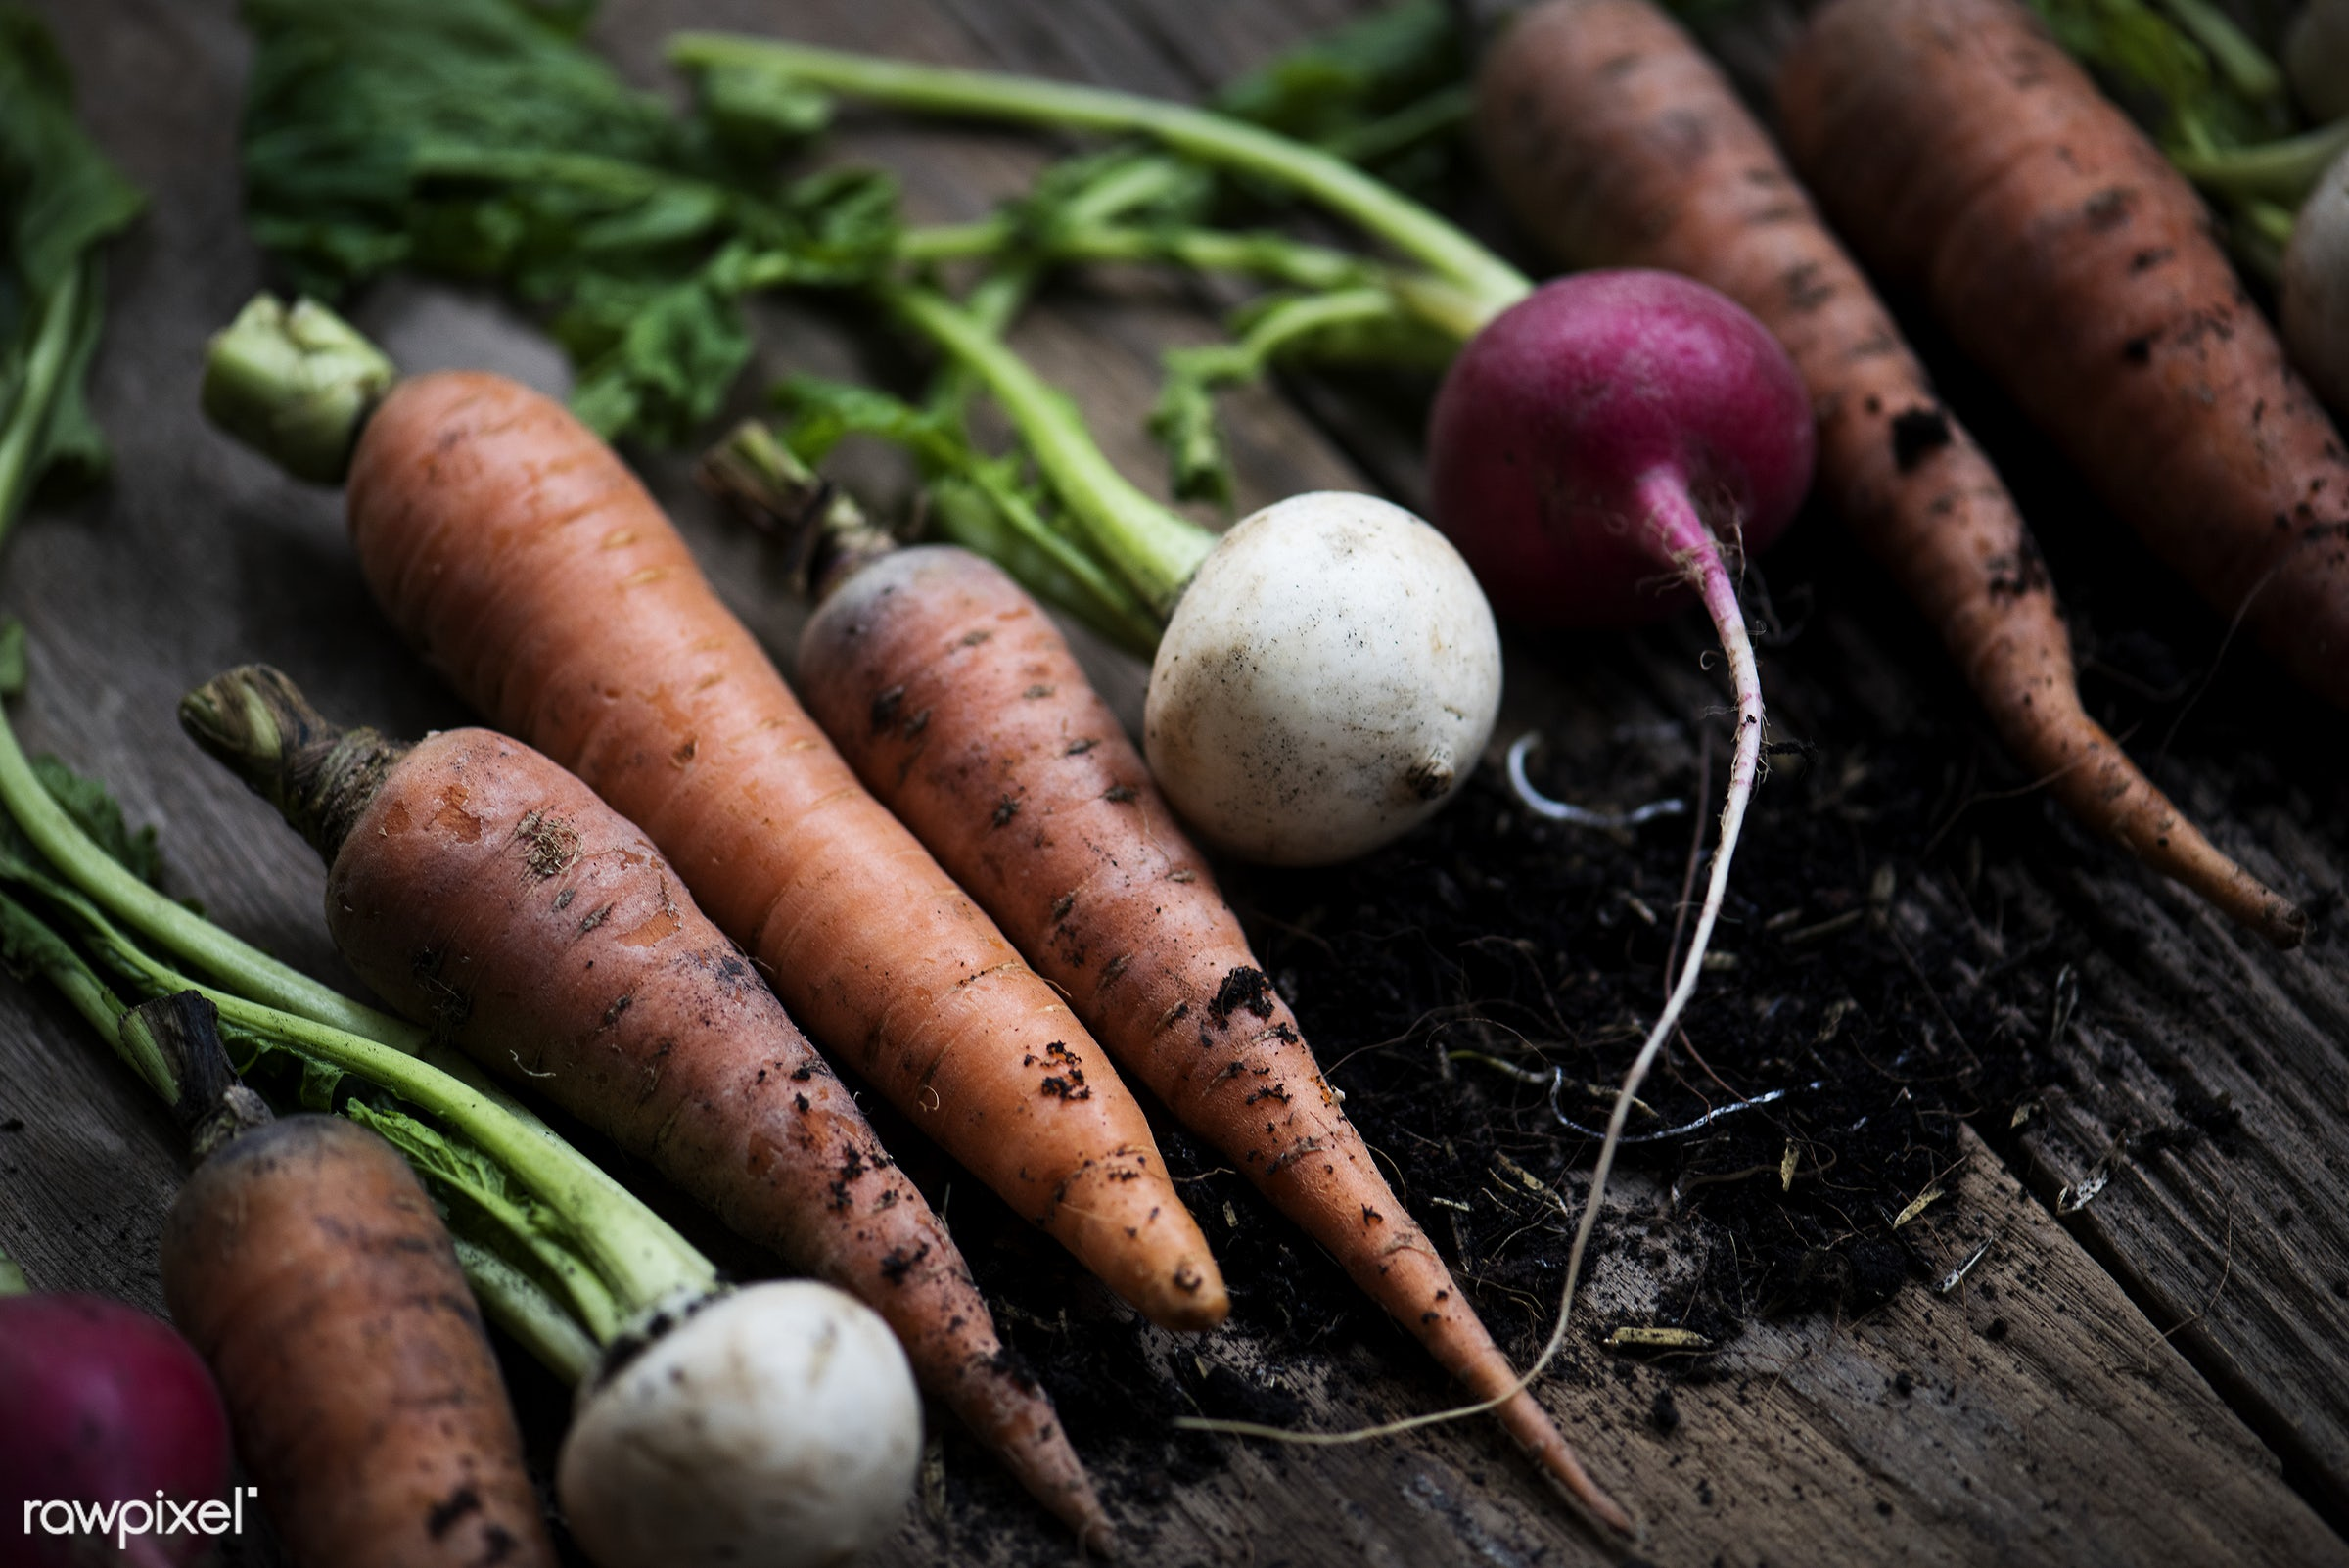 Carrots and beets - raw, nobody, set, ingredients, farm, nature, fresh, wooden background, various, pile, dirt, products,...